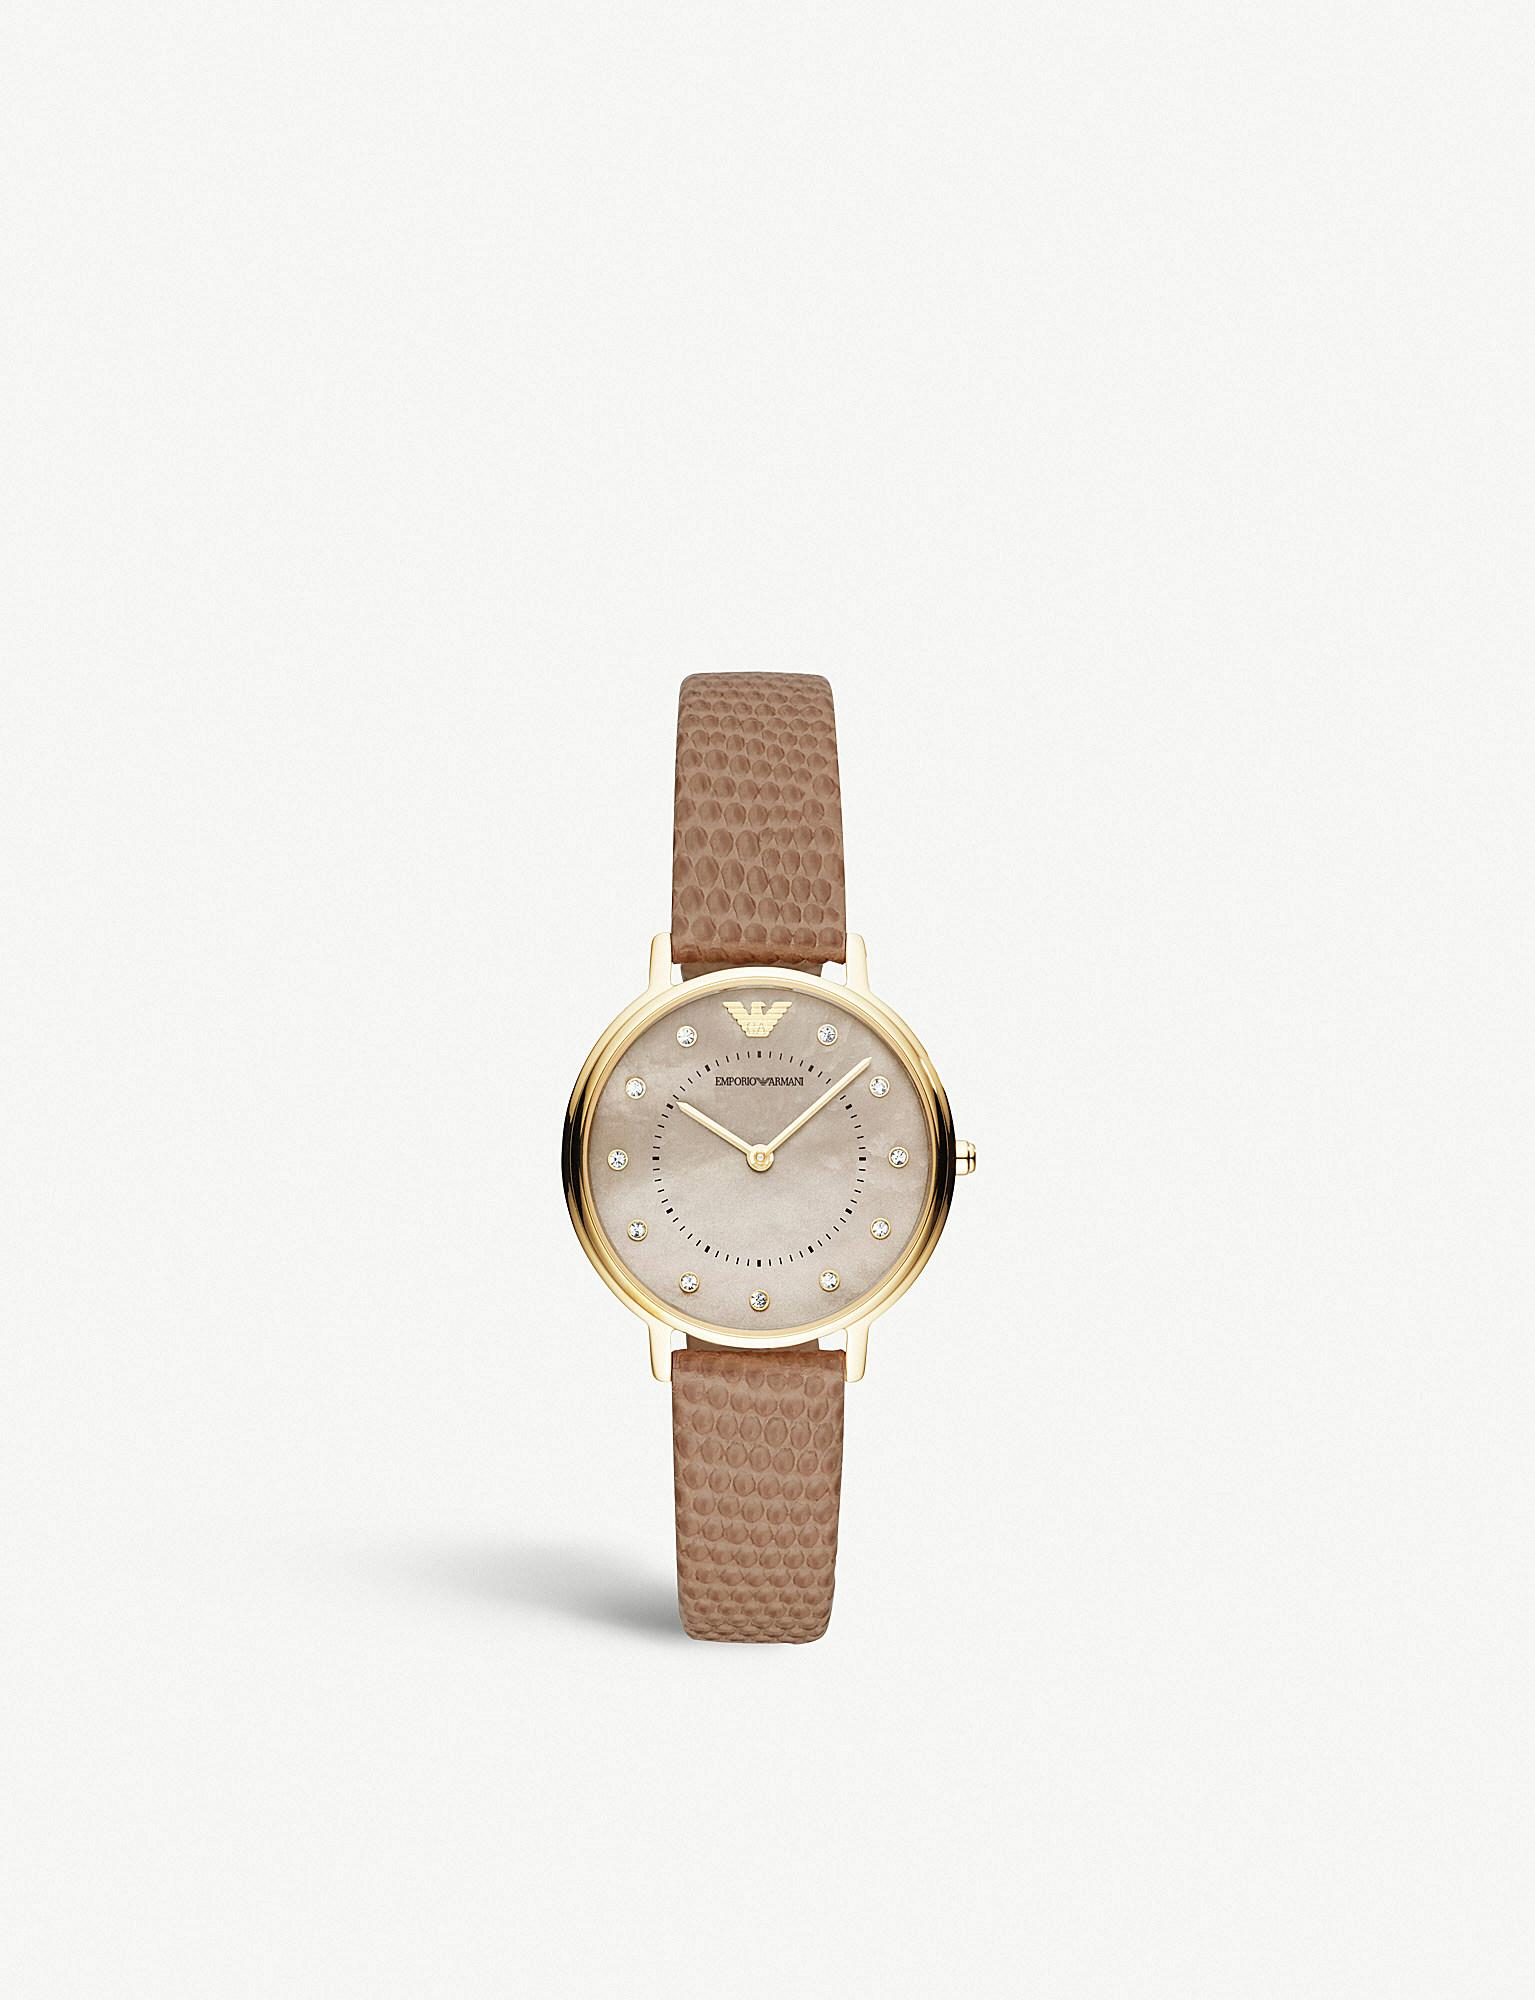 096abf7400749 Emporio Armani. Women's Ar11151 Kappa Gold-toned Stainless Steel And  Leather Strap Watch